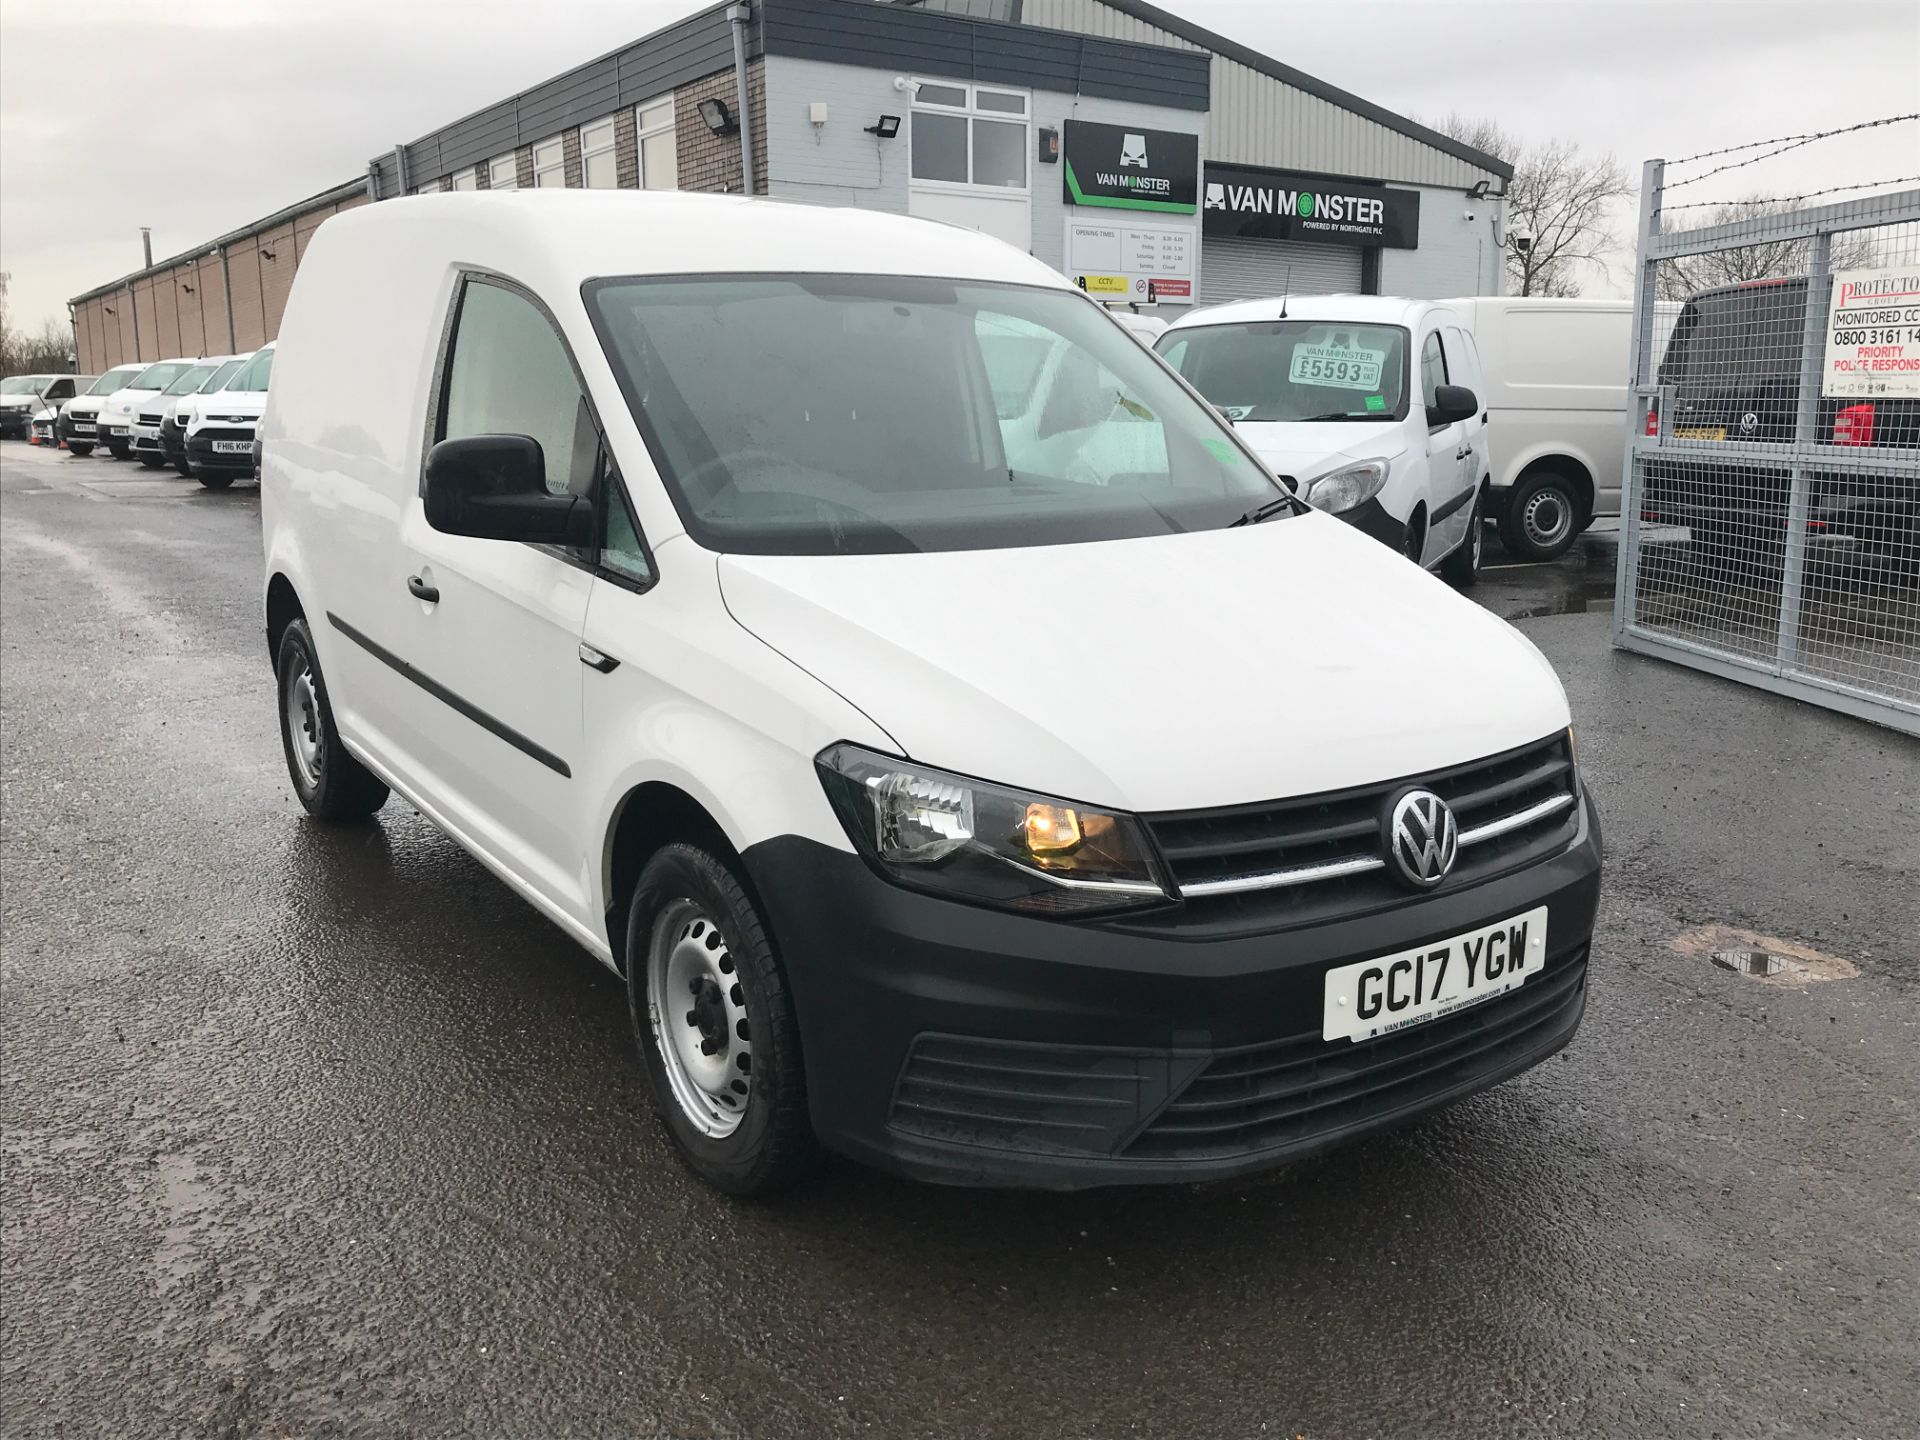 2017 Volkswagen Caddy 2.0TDI 102PS BLUEMOTION TECH STARTLINE EURO 6 (GC17YGW)